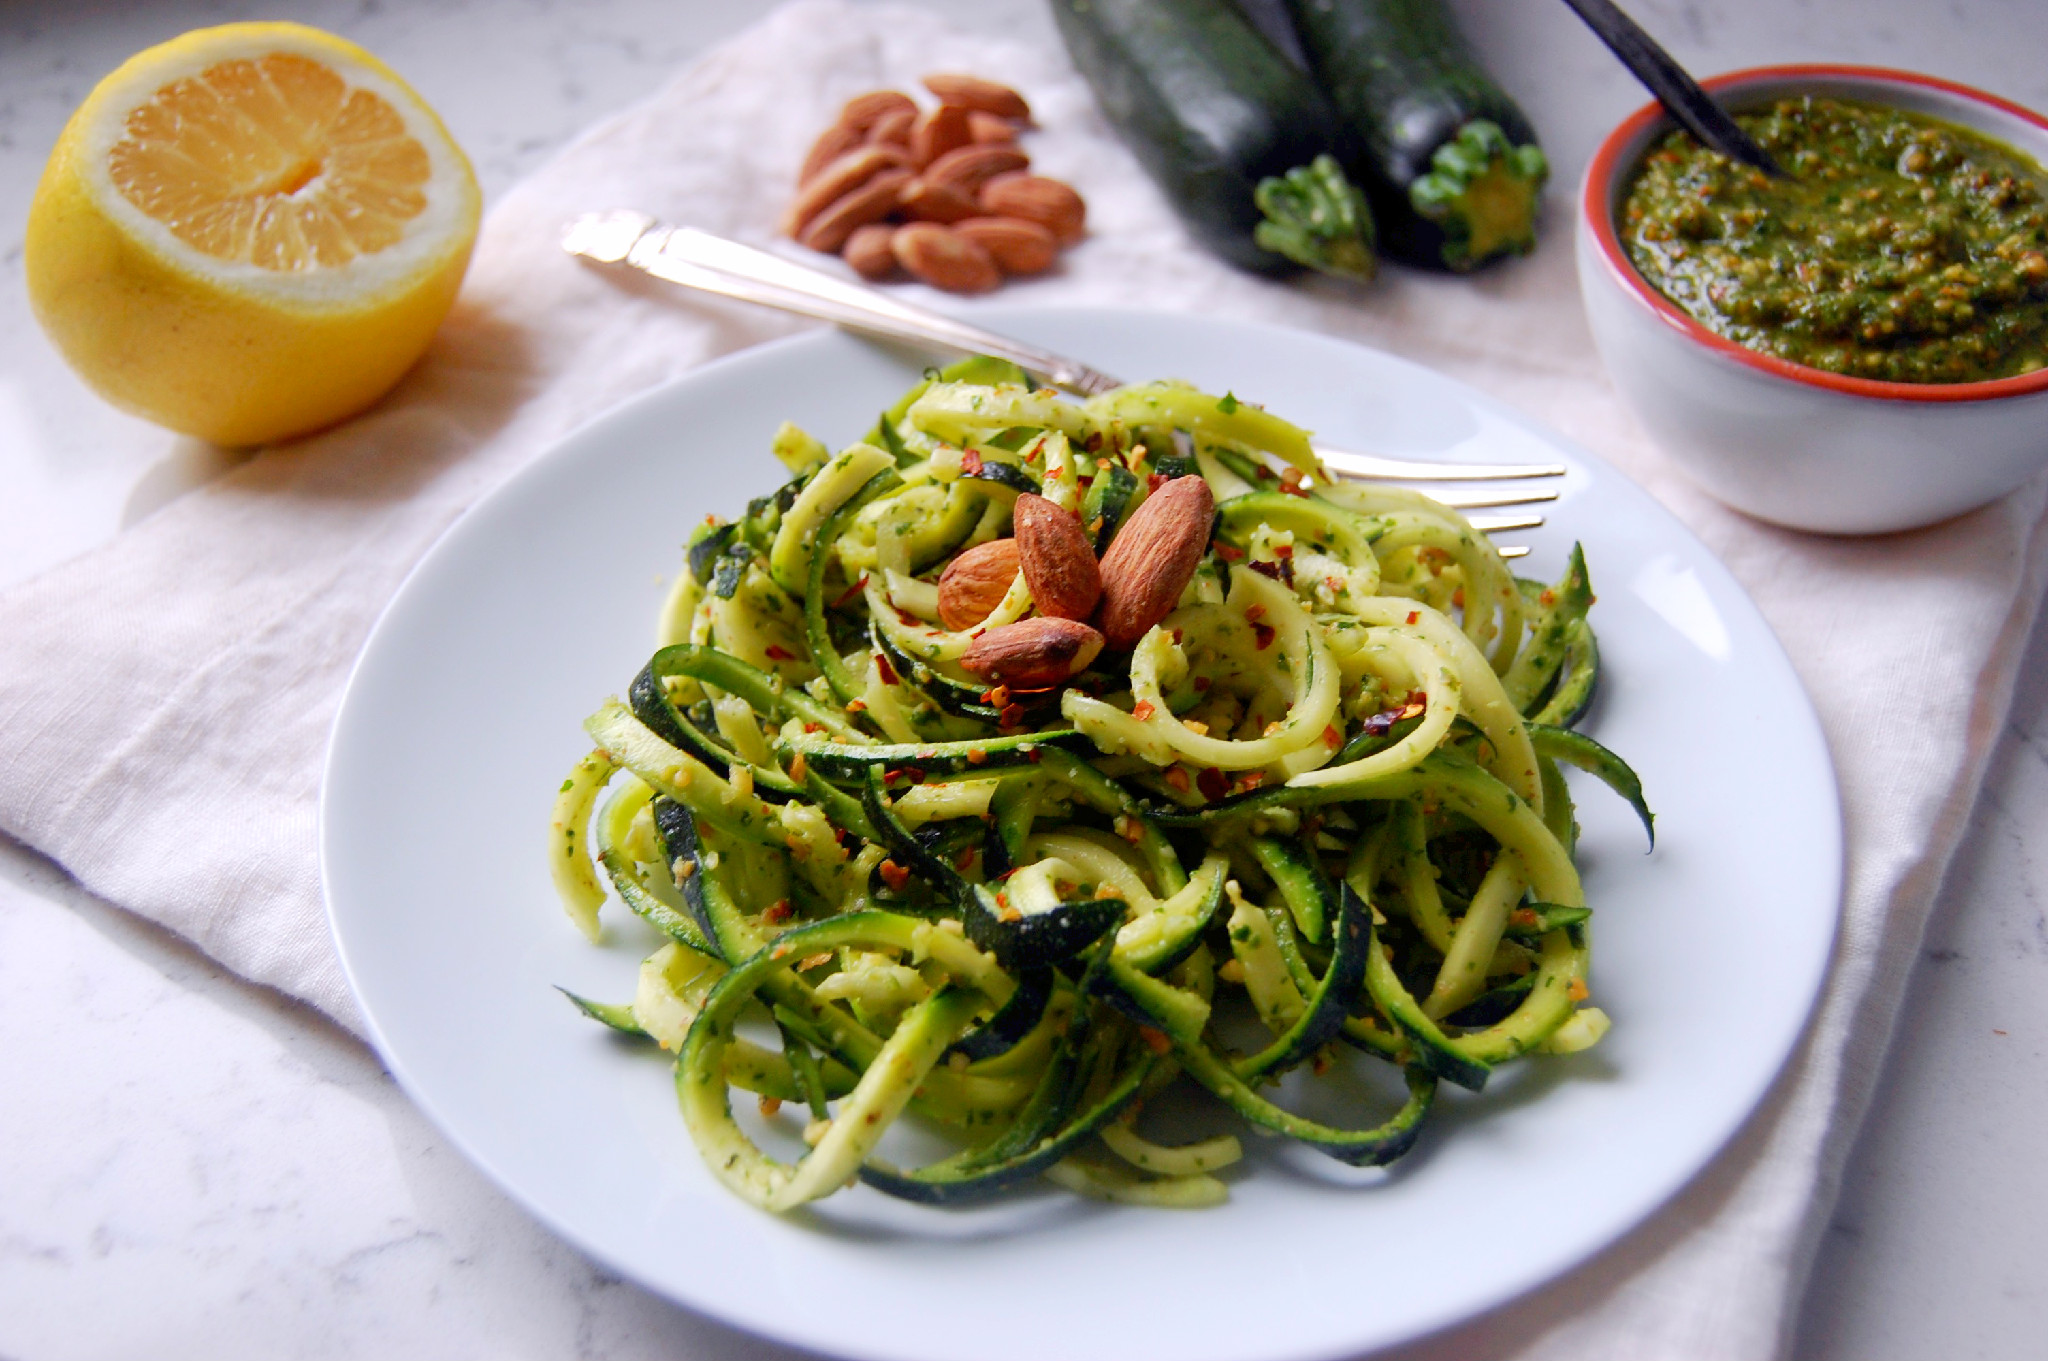 Quick and Easy Zucchini Noodles with a Dairy-free Chunky Almond Pesto | uprootkitchen.com